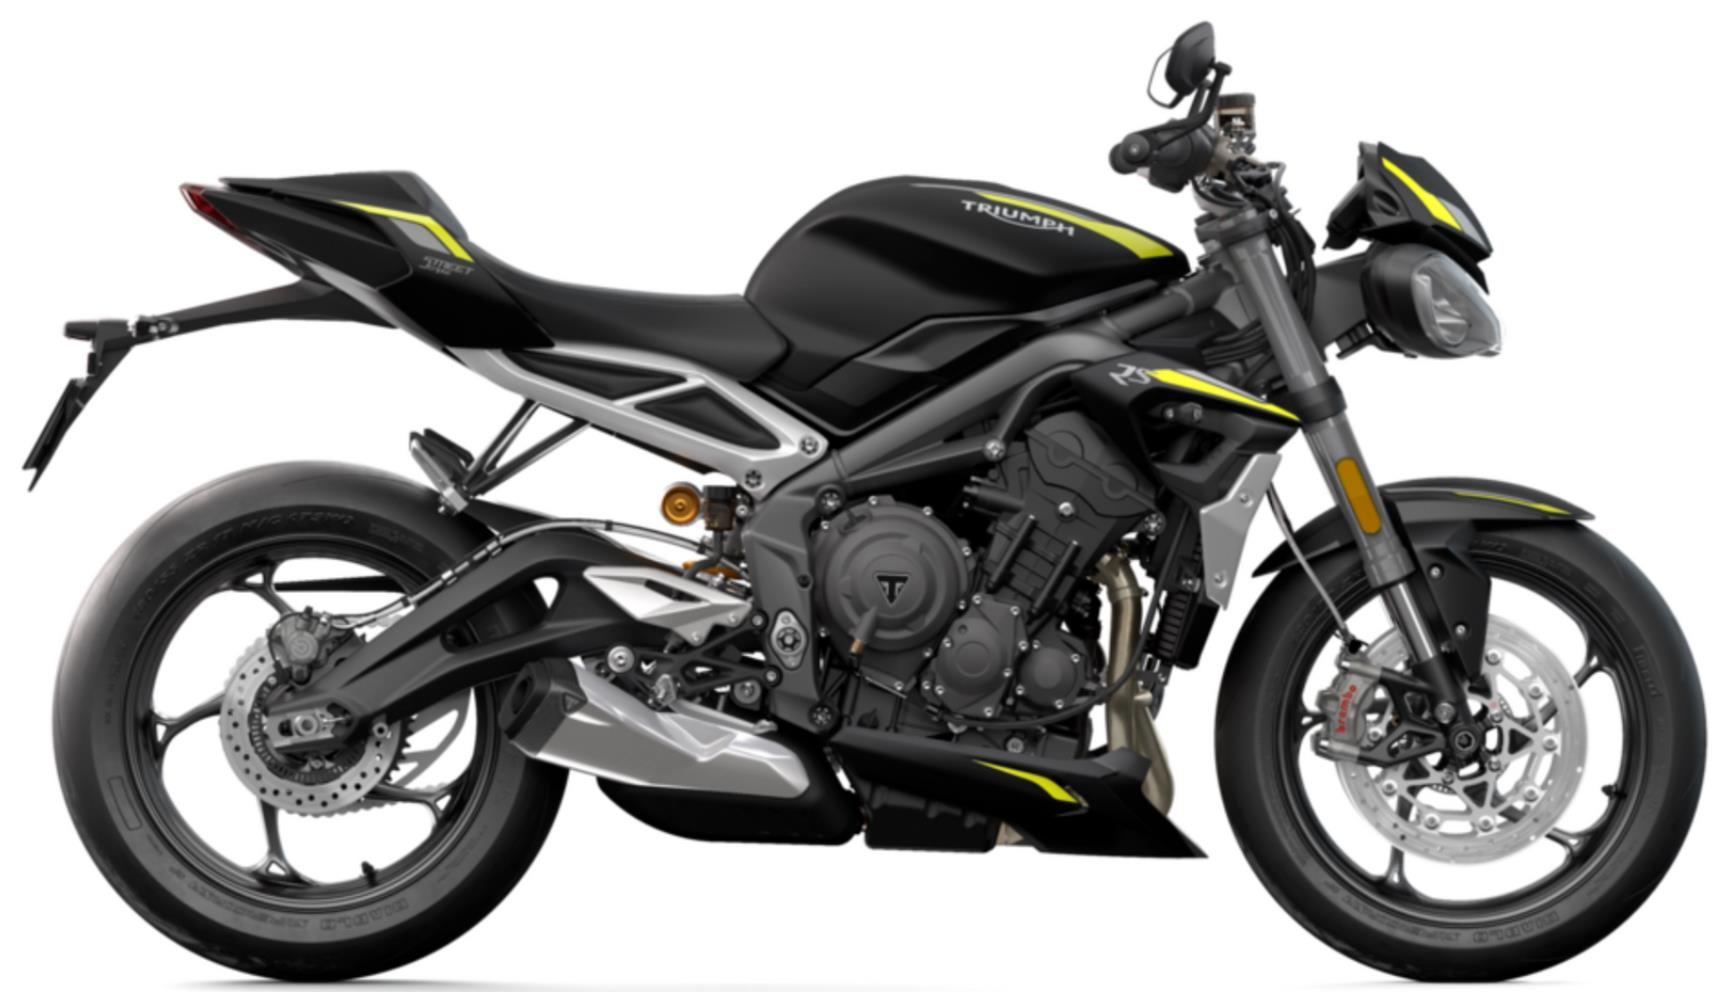 2020 Triumph Street Triple RS Price, Top Speed & Mileage in India